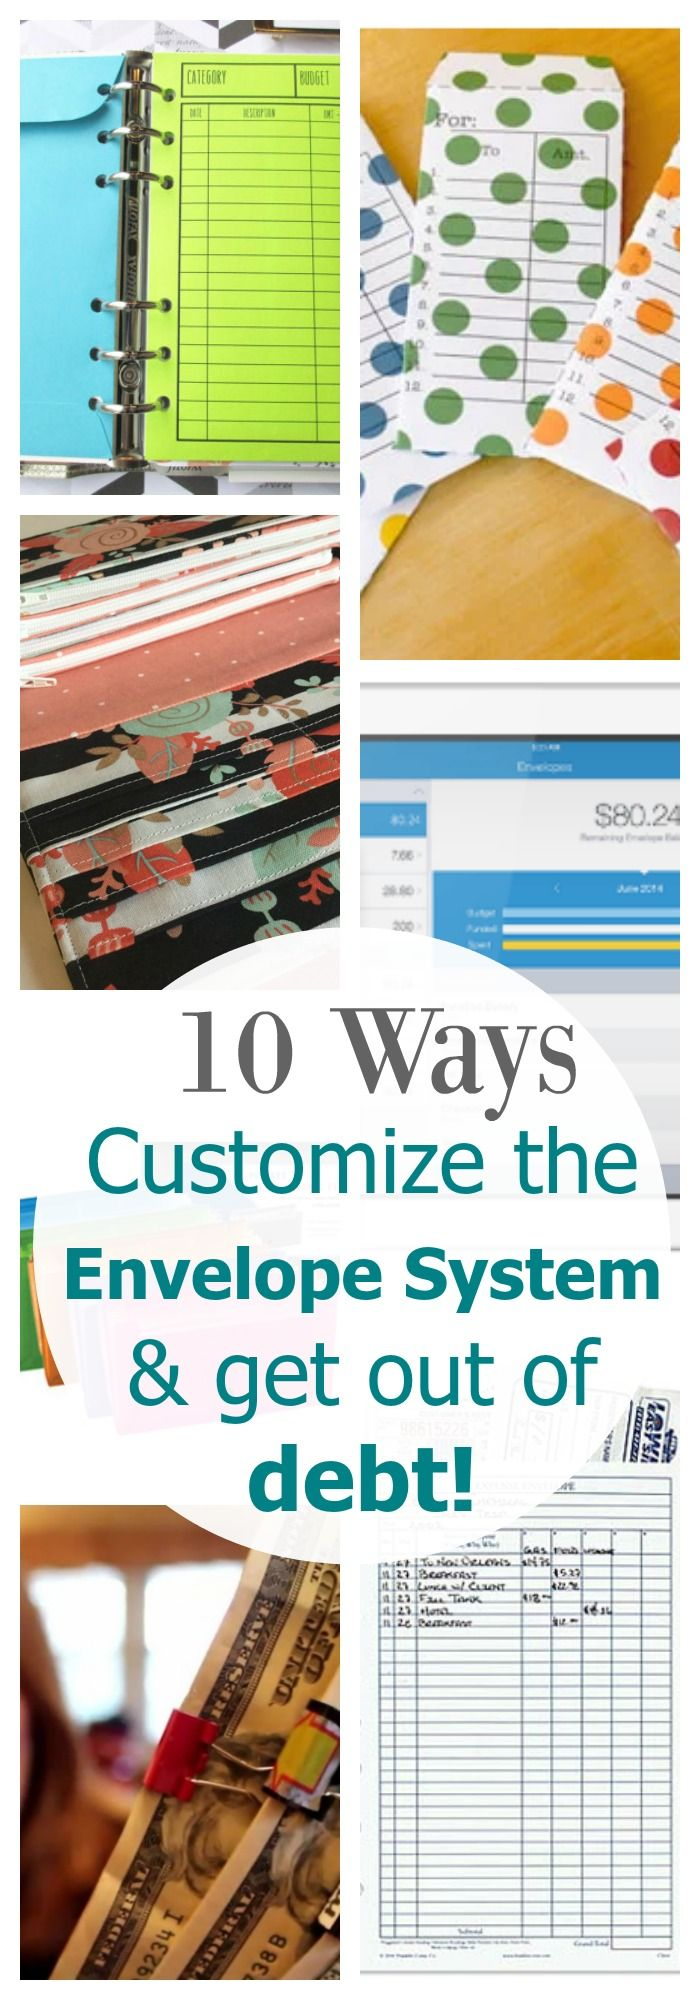 10 Ways to customize the envelope system and get out of debt